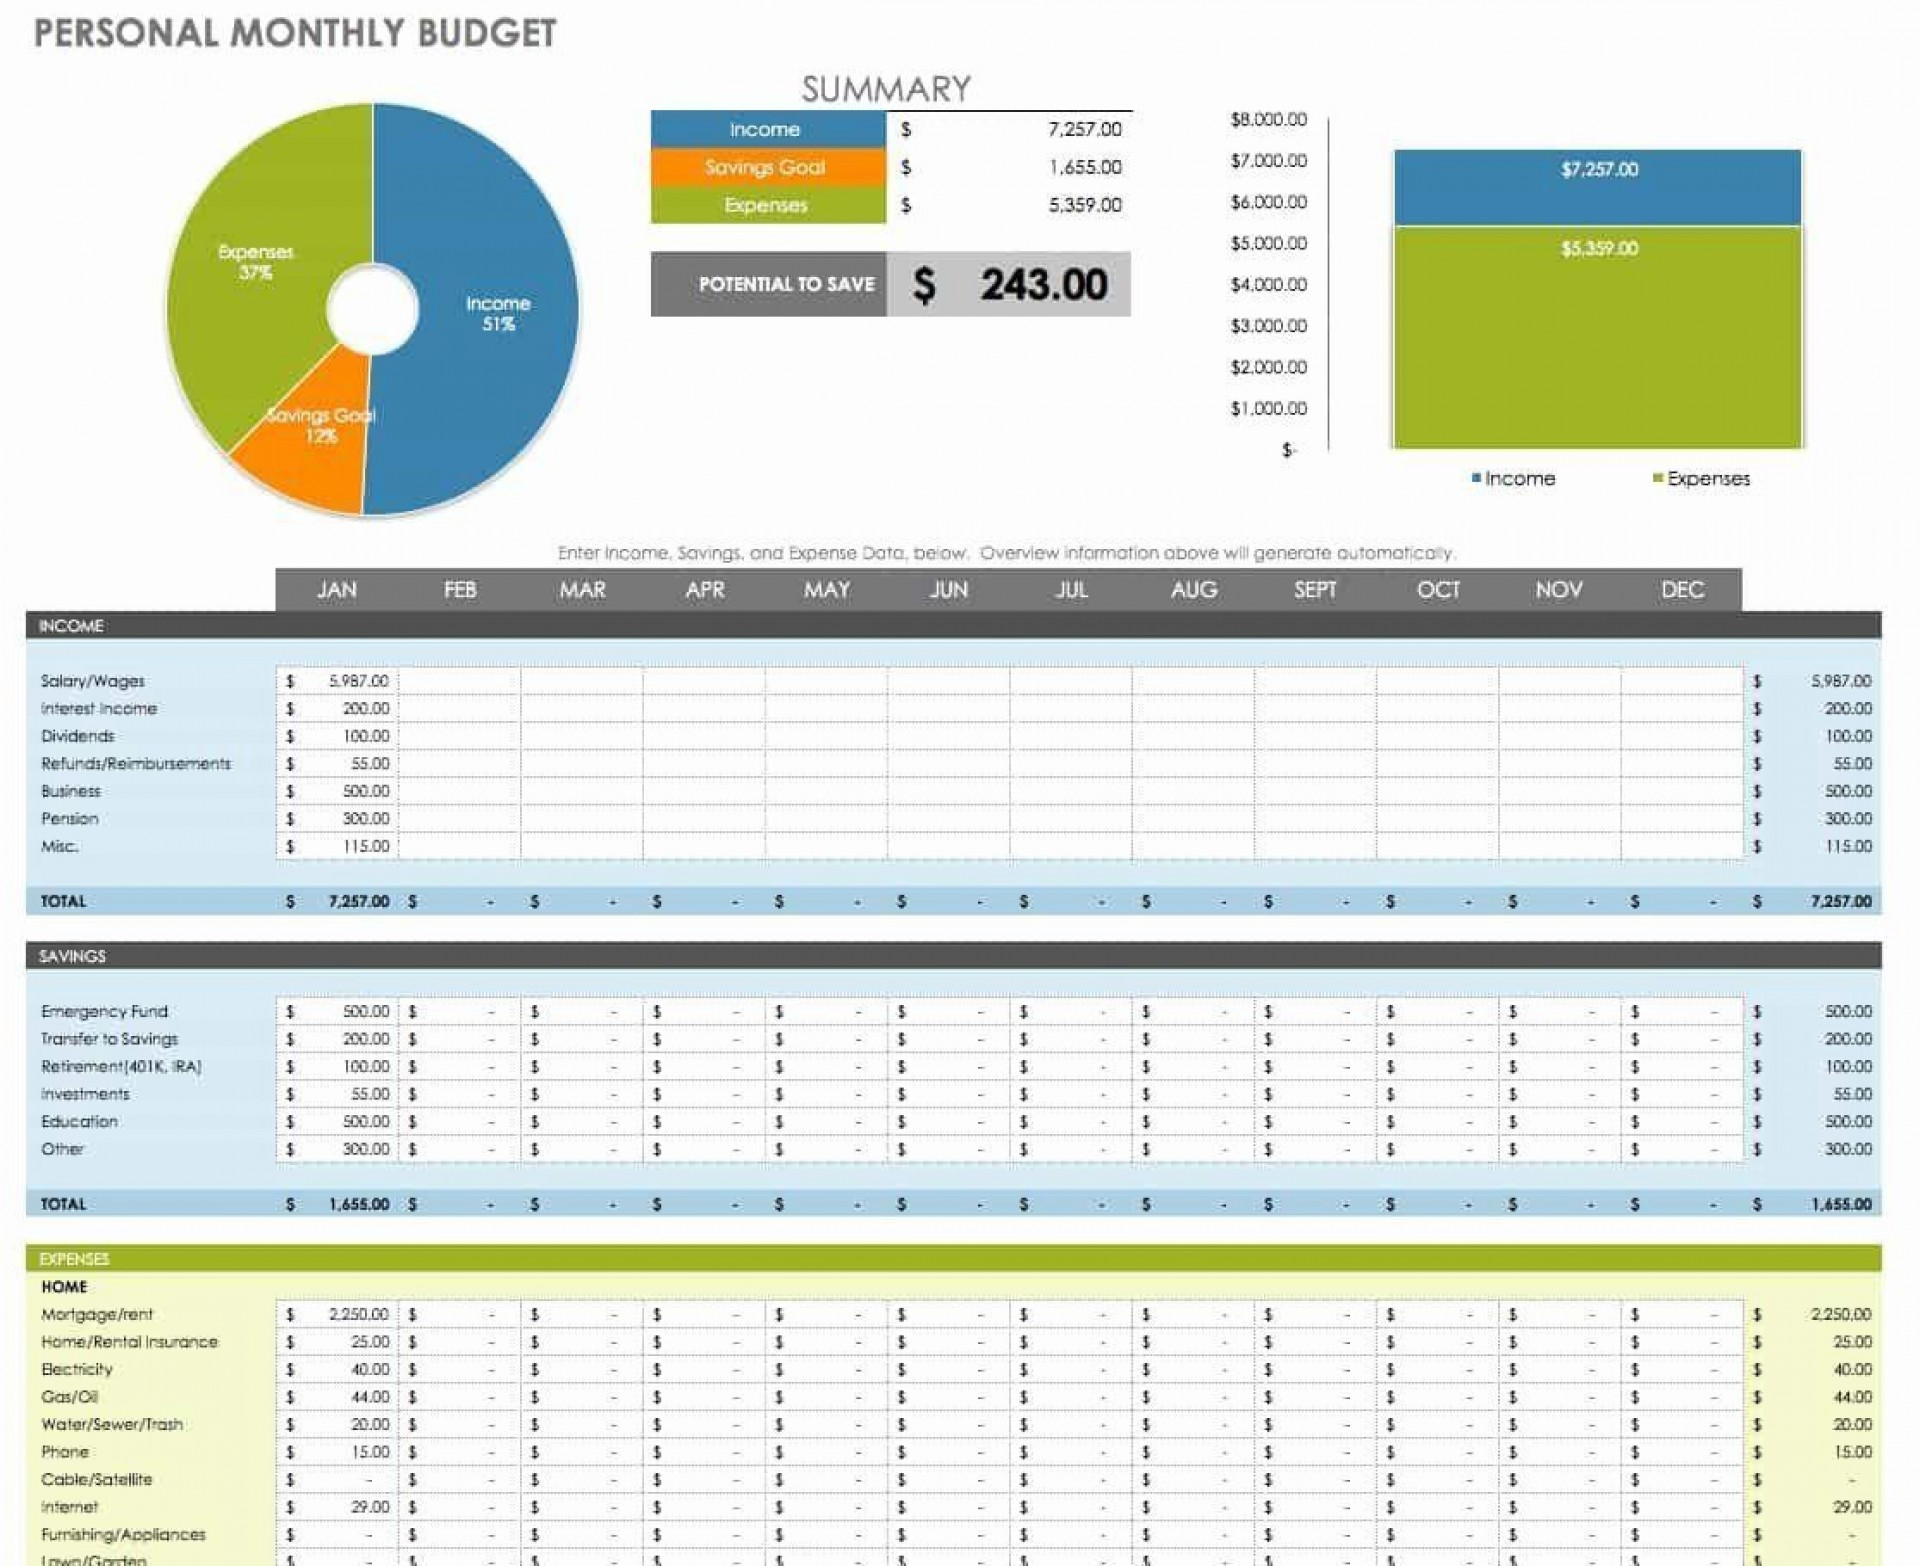 003 Impressive Personal Budget Template Excel Inspiration  Spreadsheet Simple South Africa1920